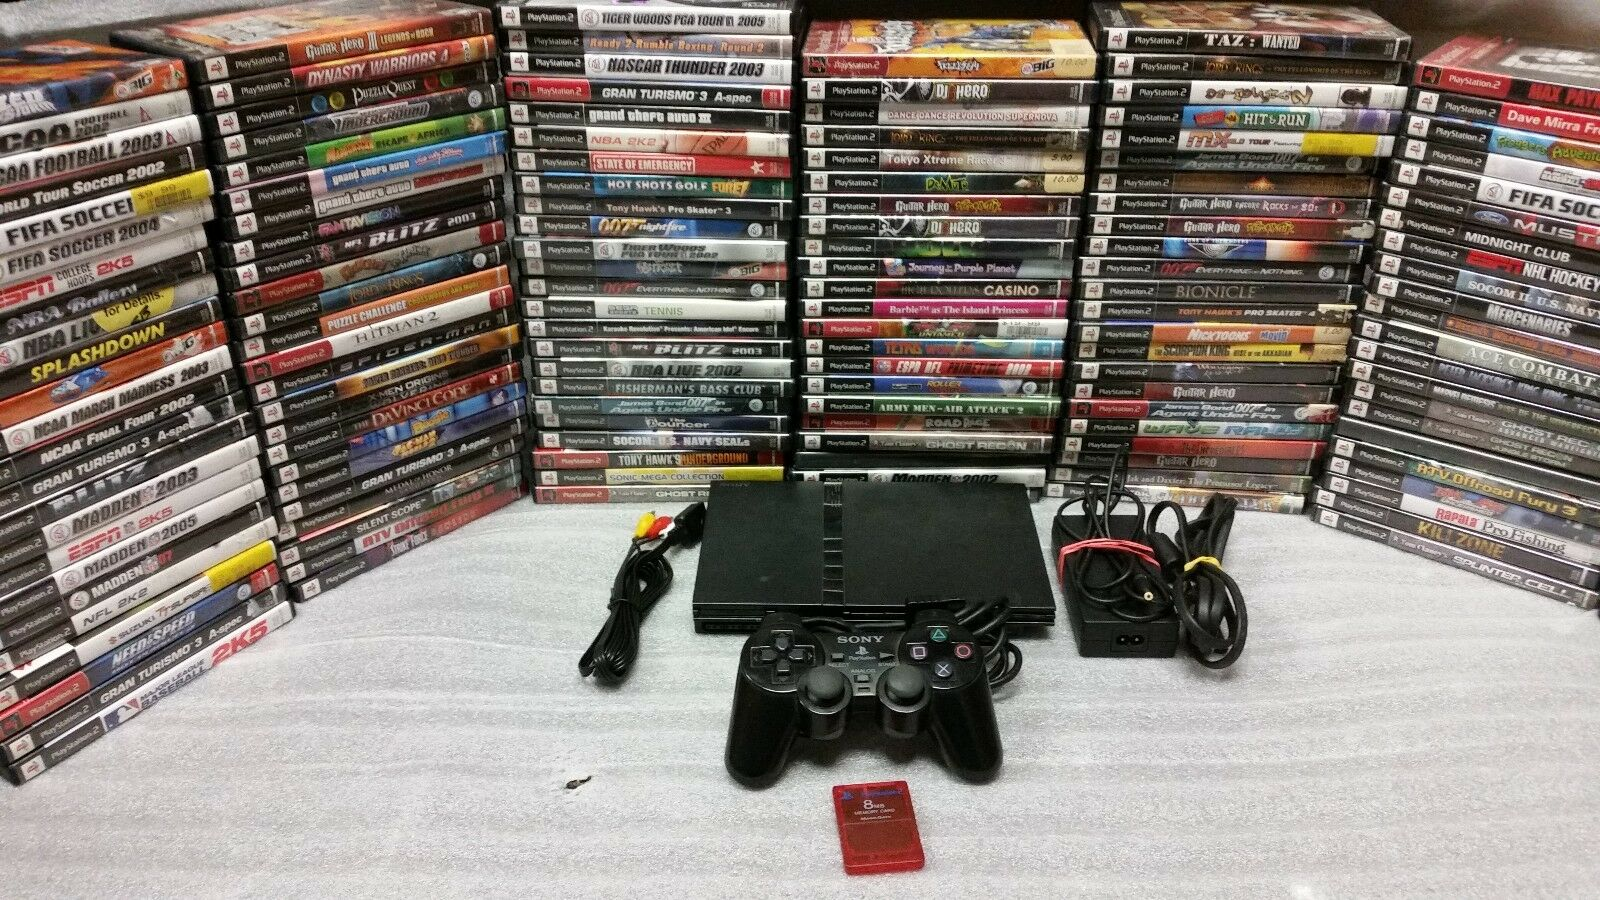 Sony PlayStation 2 PS2 Slim Edition Black Console System with games